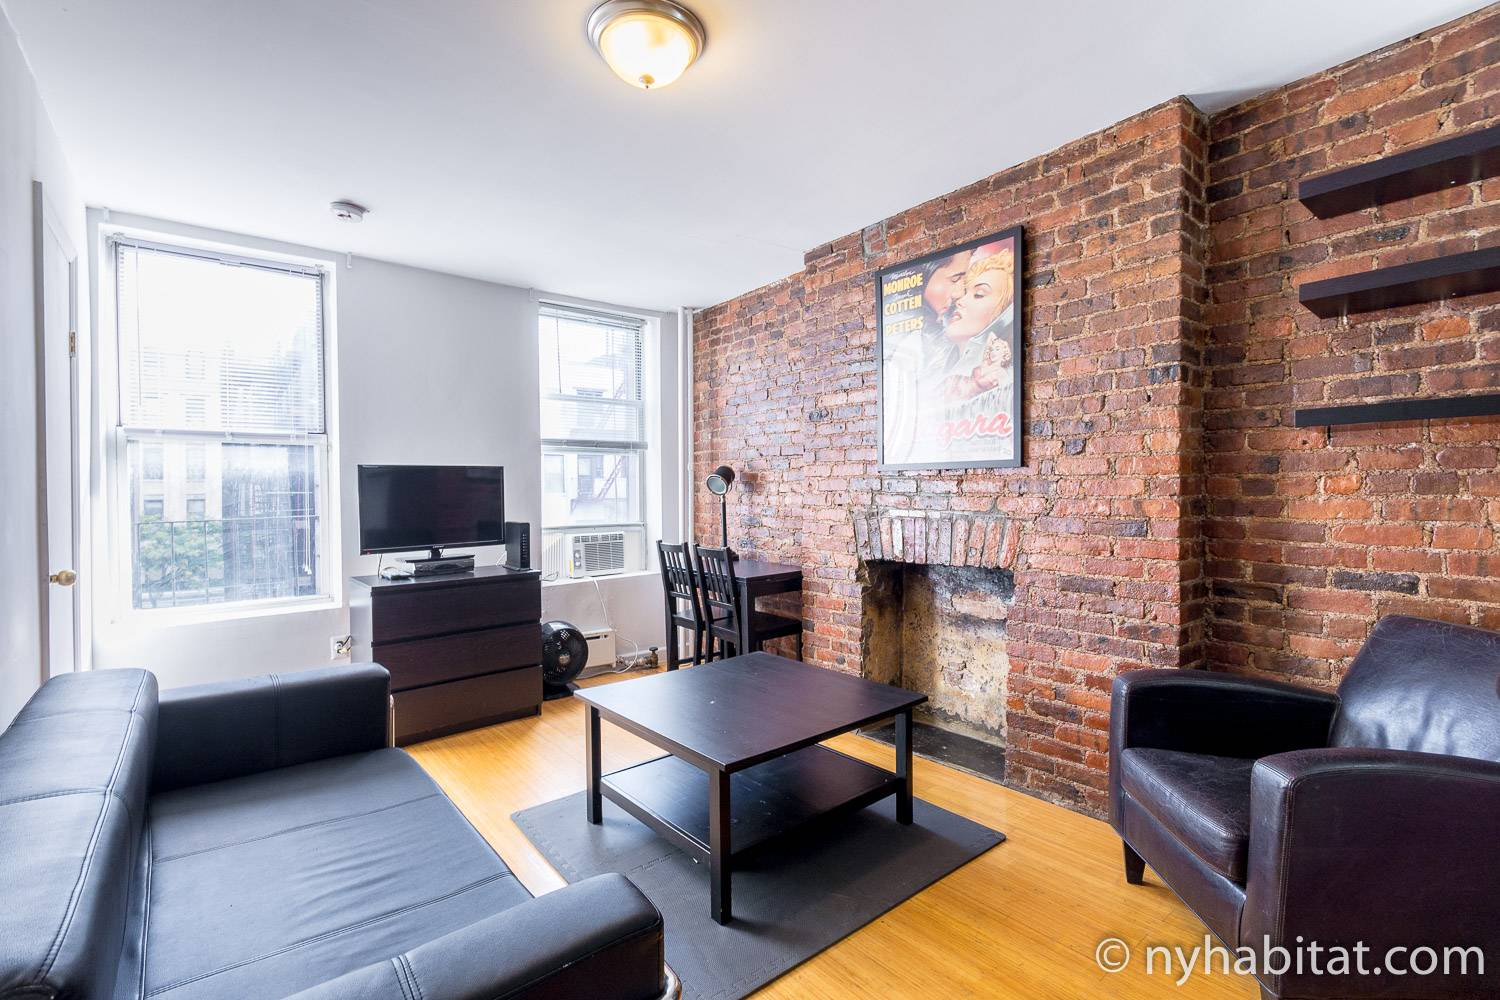 Image of living room of furnished rental NY-17291 in Little Italy with exposed brick walls